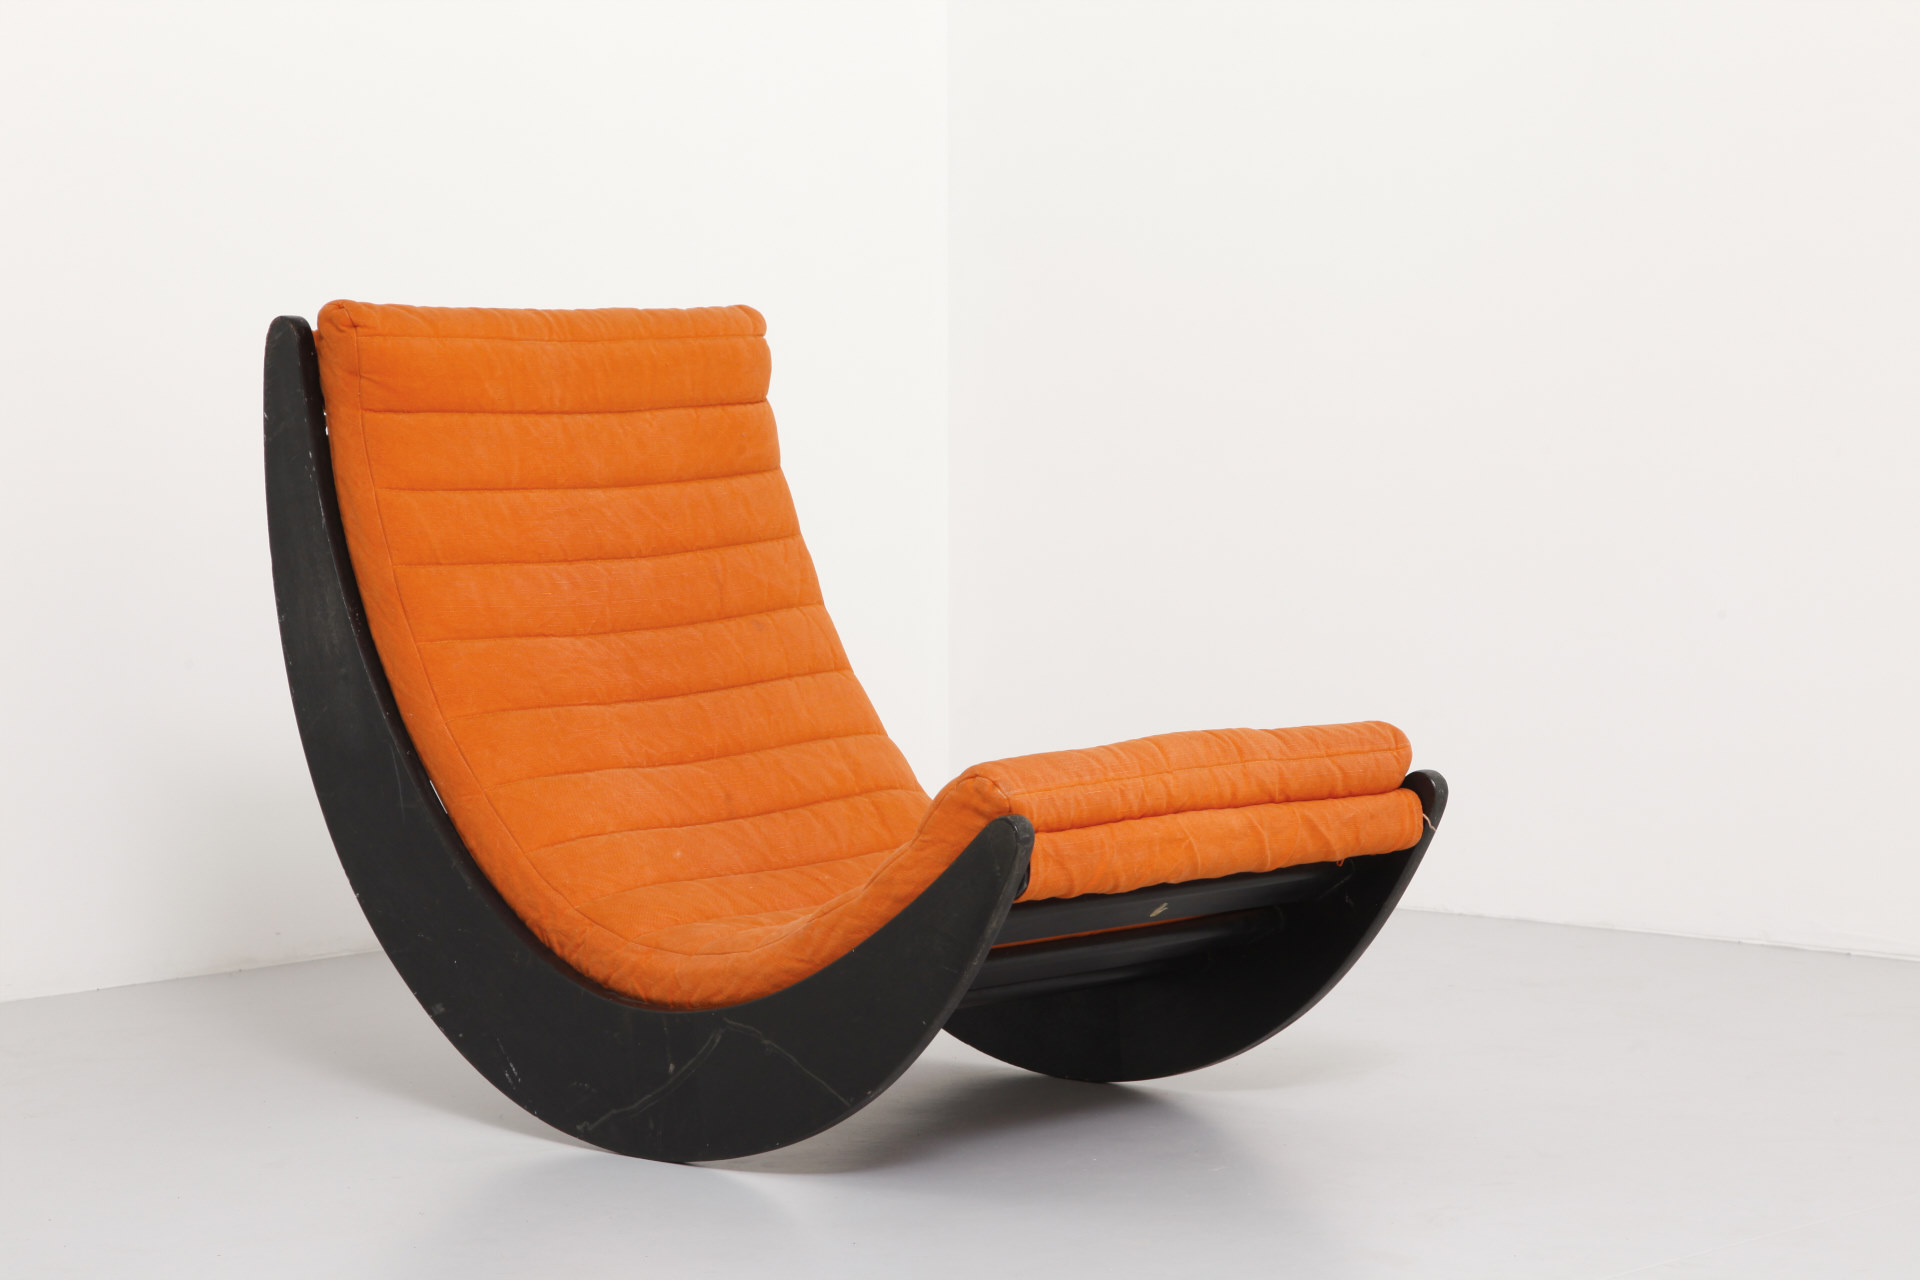 Verner panton icono del dise o industrial dan s blog de for Diseno industrial de muebles